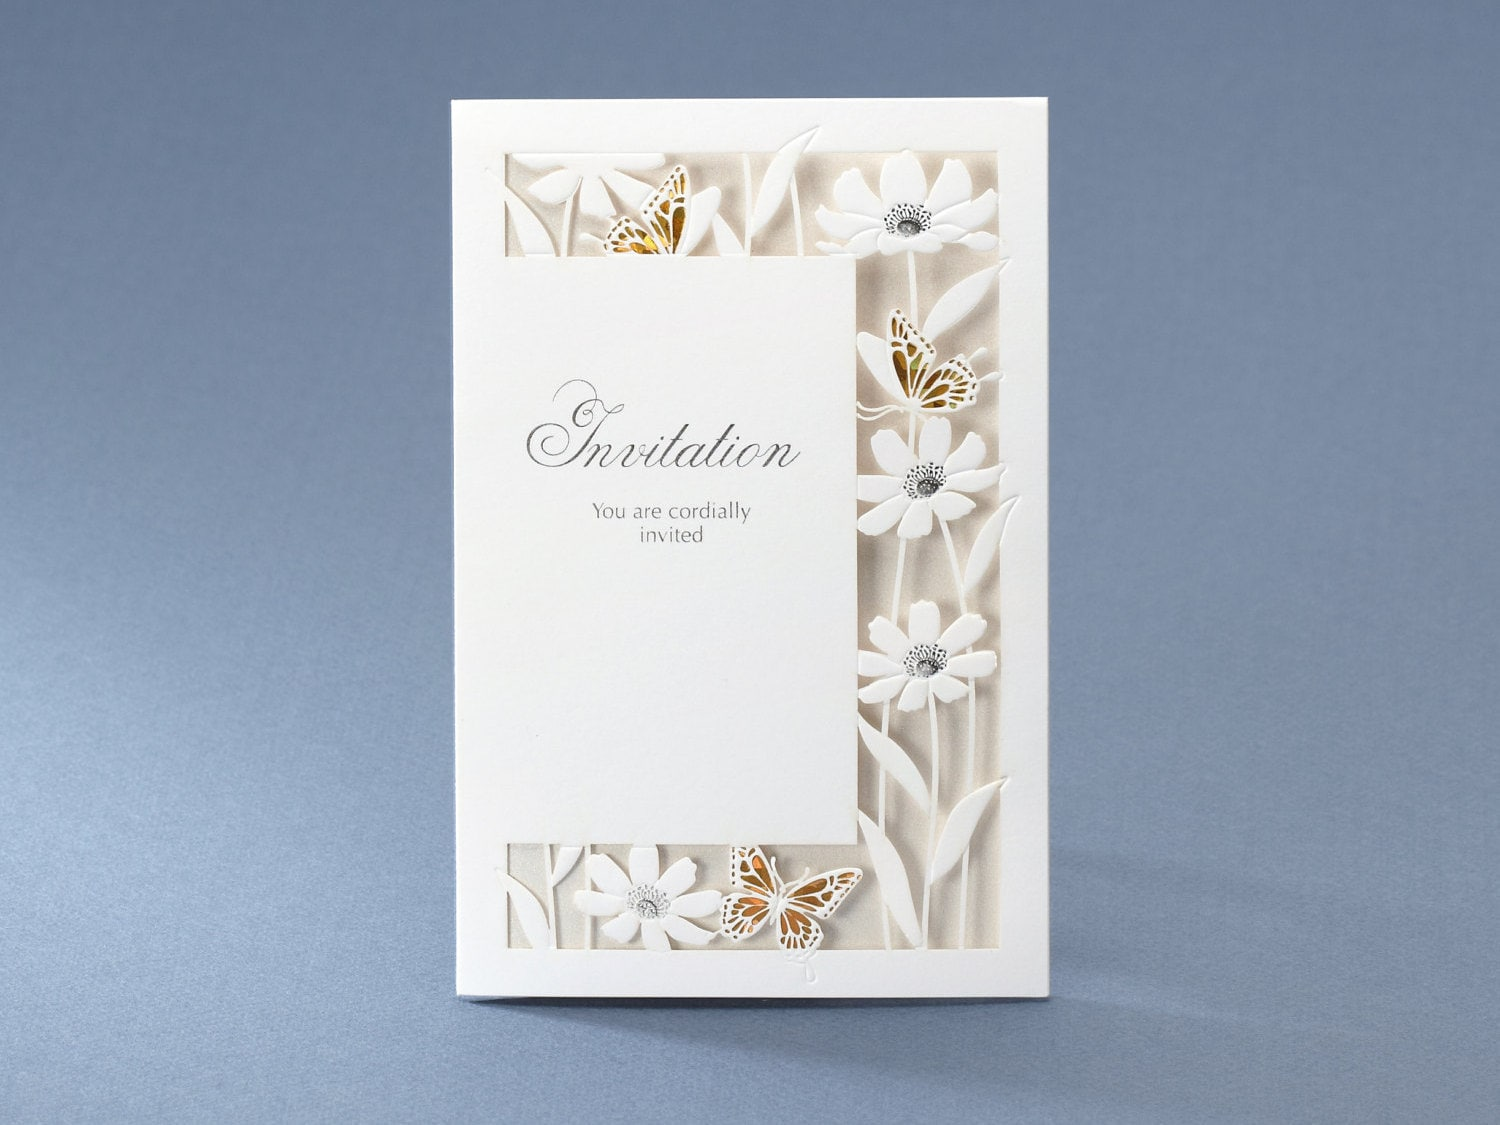 Free Personalized Wedding Invitations: Personalized Laser Cut Laced Wedding Invitations With Flowers